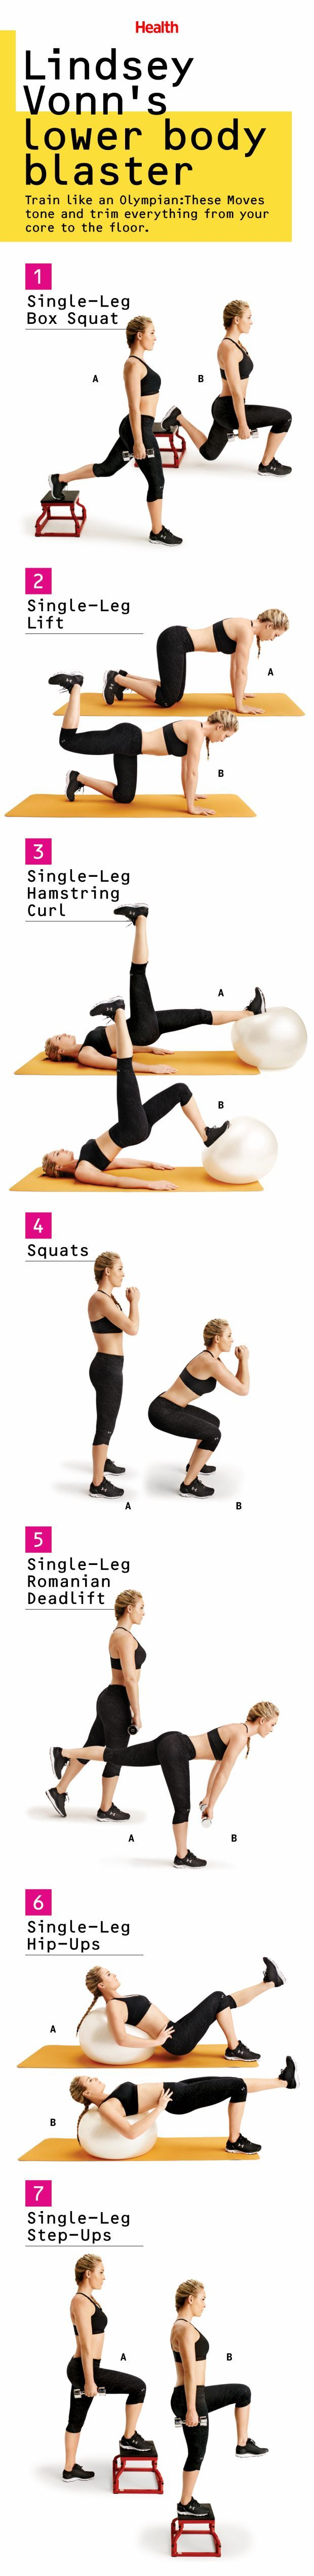 Lindsey's lower-body workout torches calories and builds muscle in all the right places.   Health.com